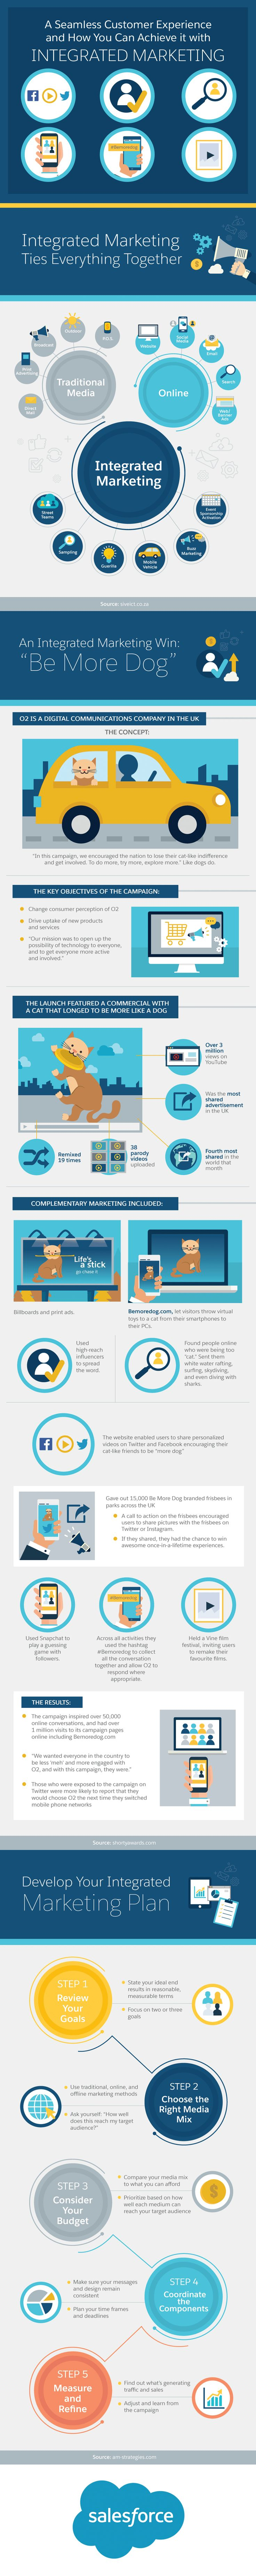 How to Achieve a Seamless Customer Experience with Integrated Marketing [Infographic]